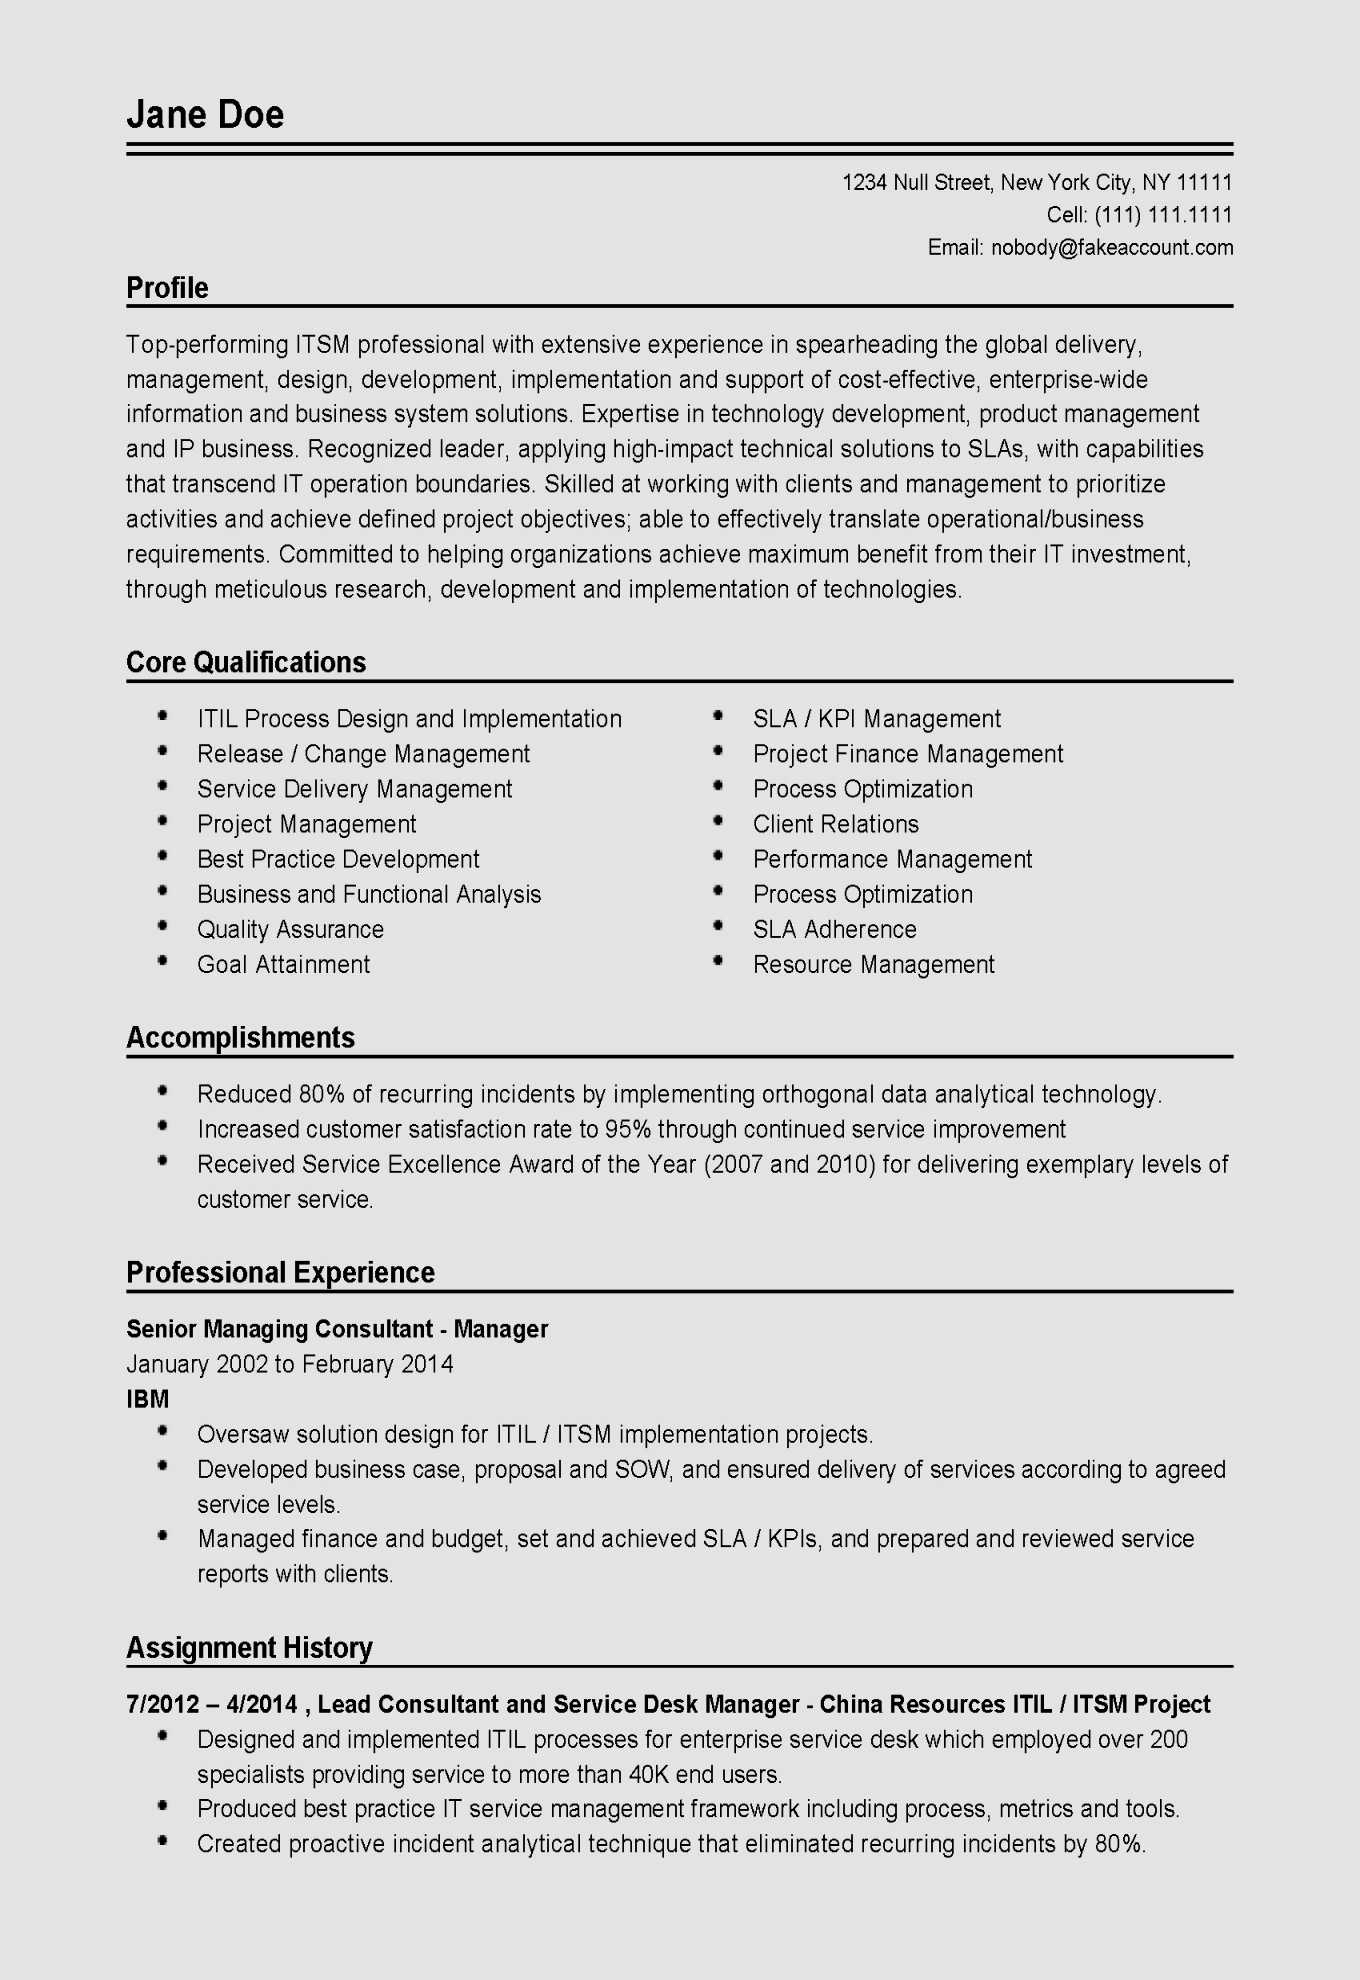 Supervisor Resume Template - 18 top Professionals Resume Template Modern Free Resume Templates